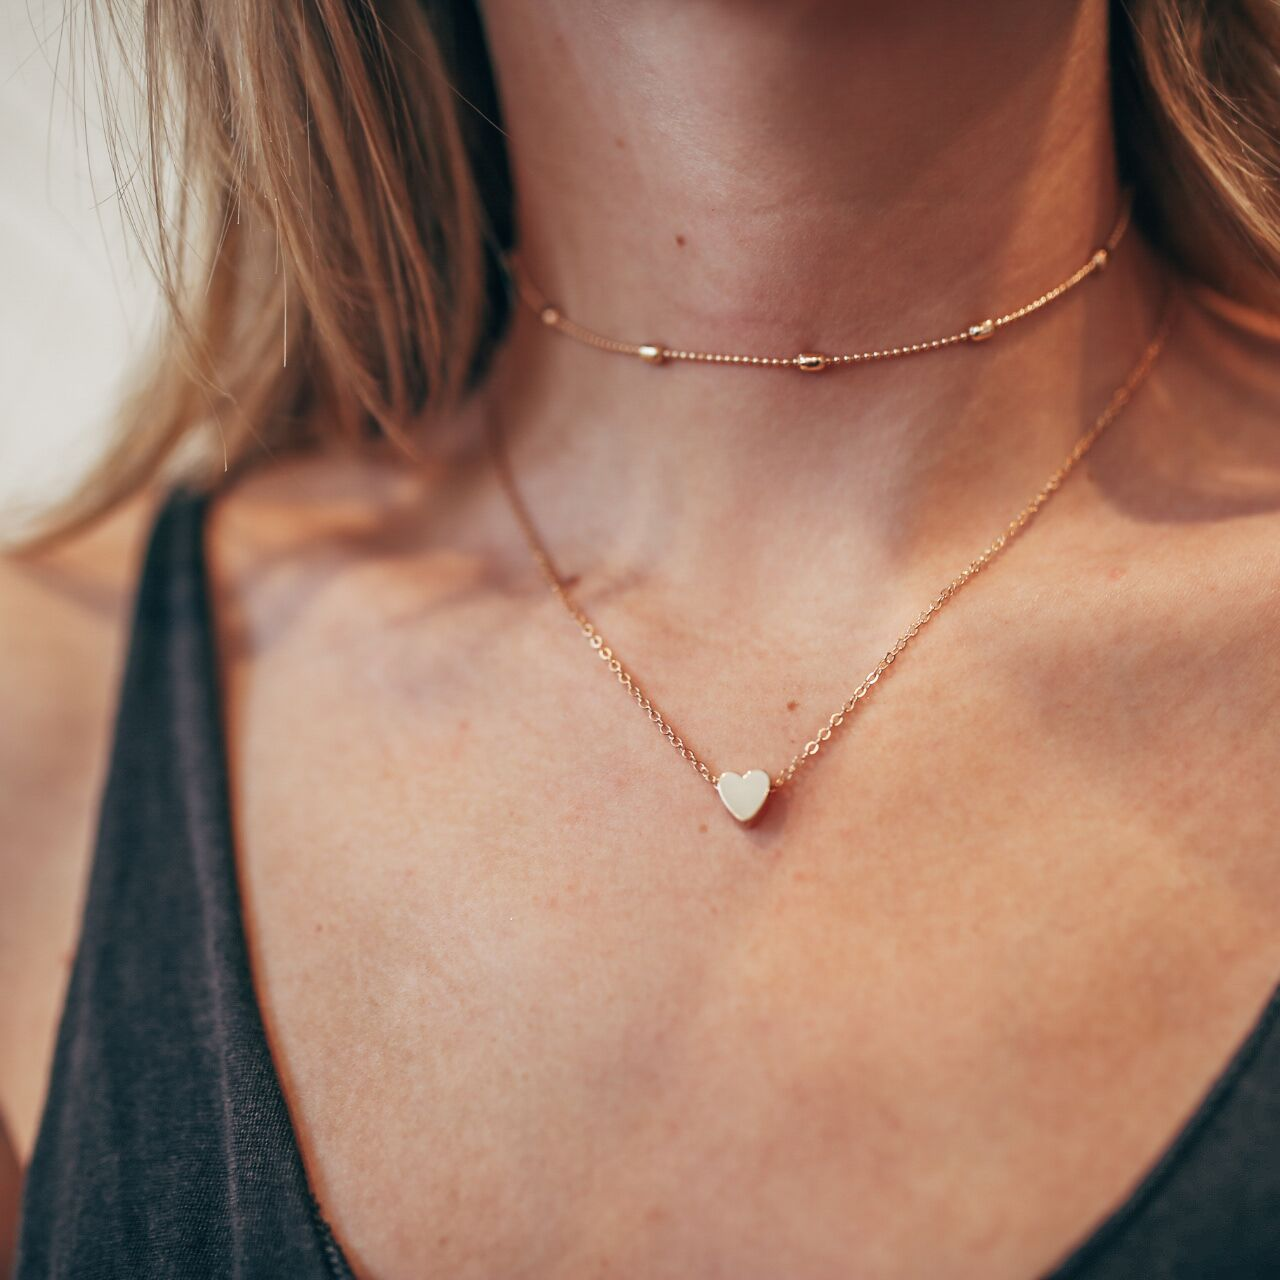 The Double Horn Heart Necklace